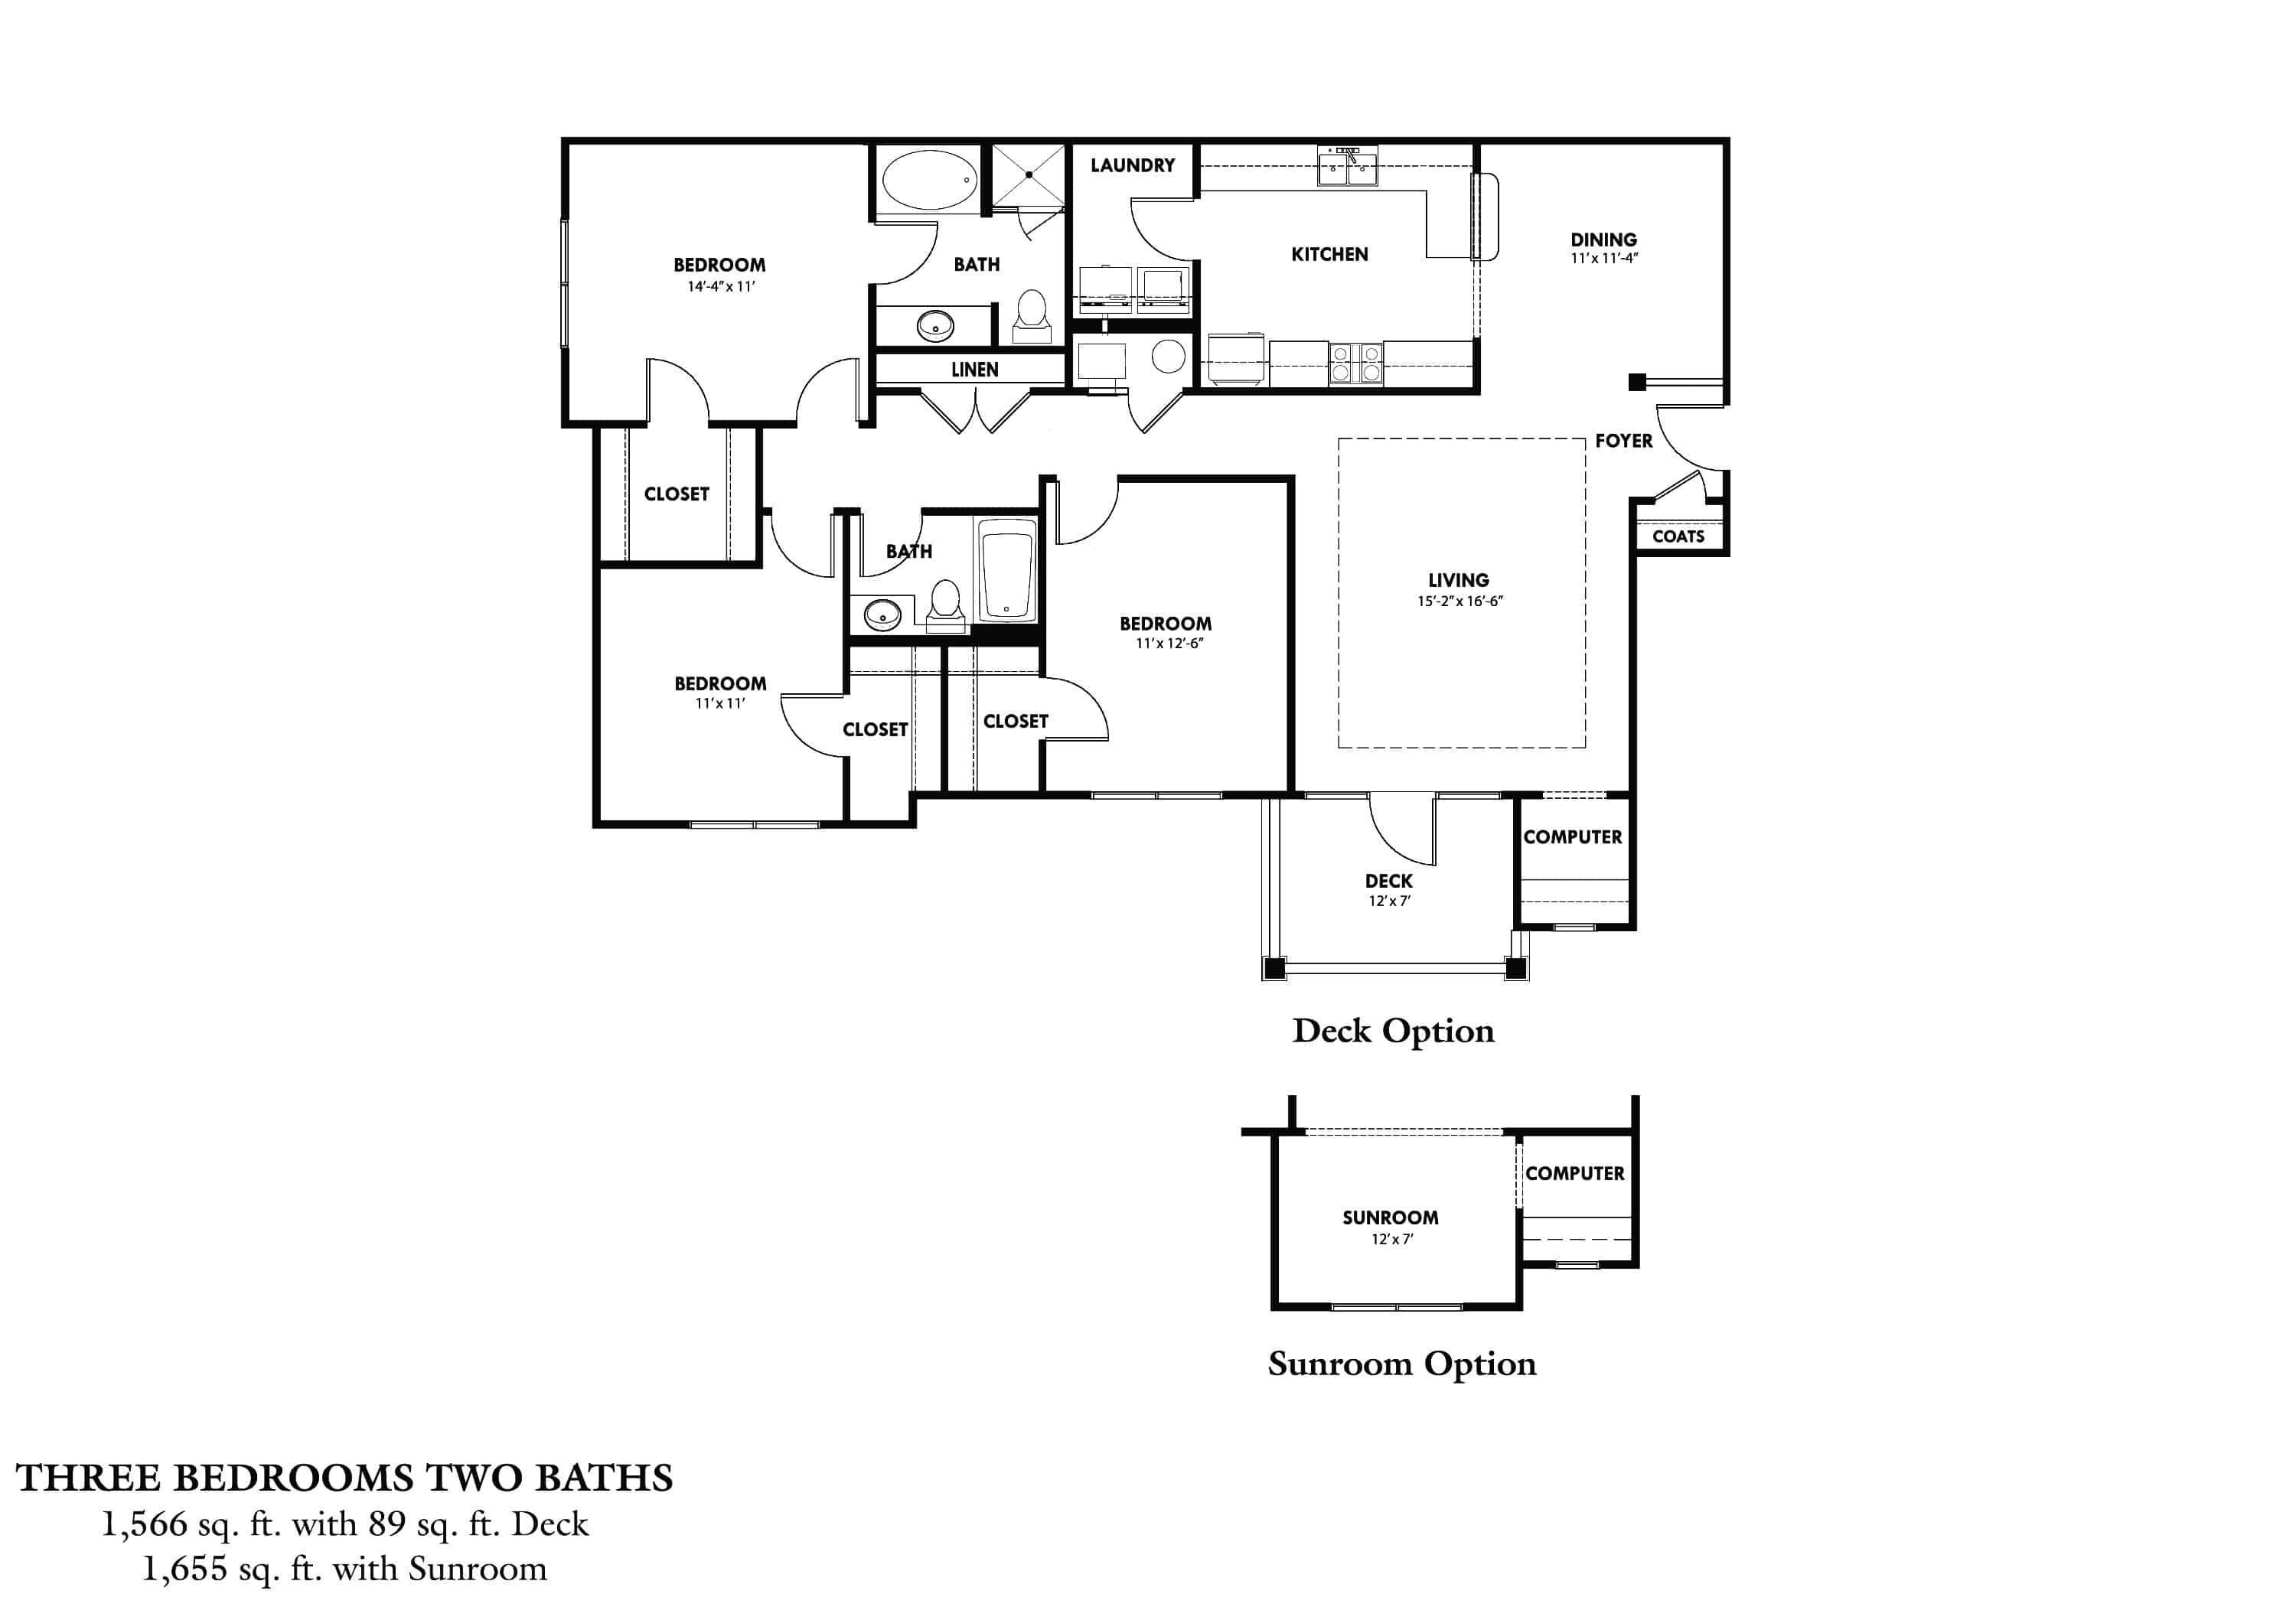 Three Bedroom (CSR) Approx. 1,655 sq. ft. with sunroom Rent From $1,215 Beds 3 Baths 2